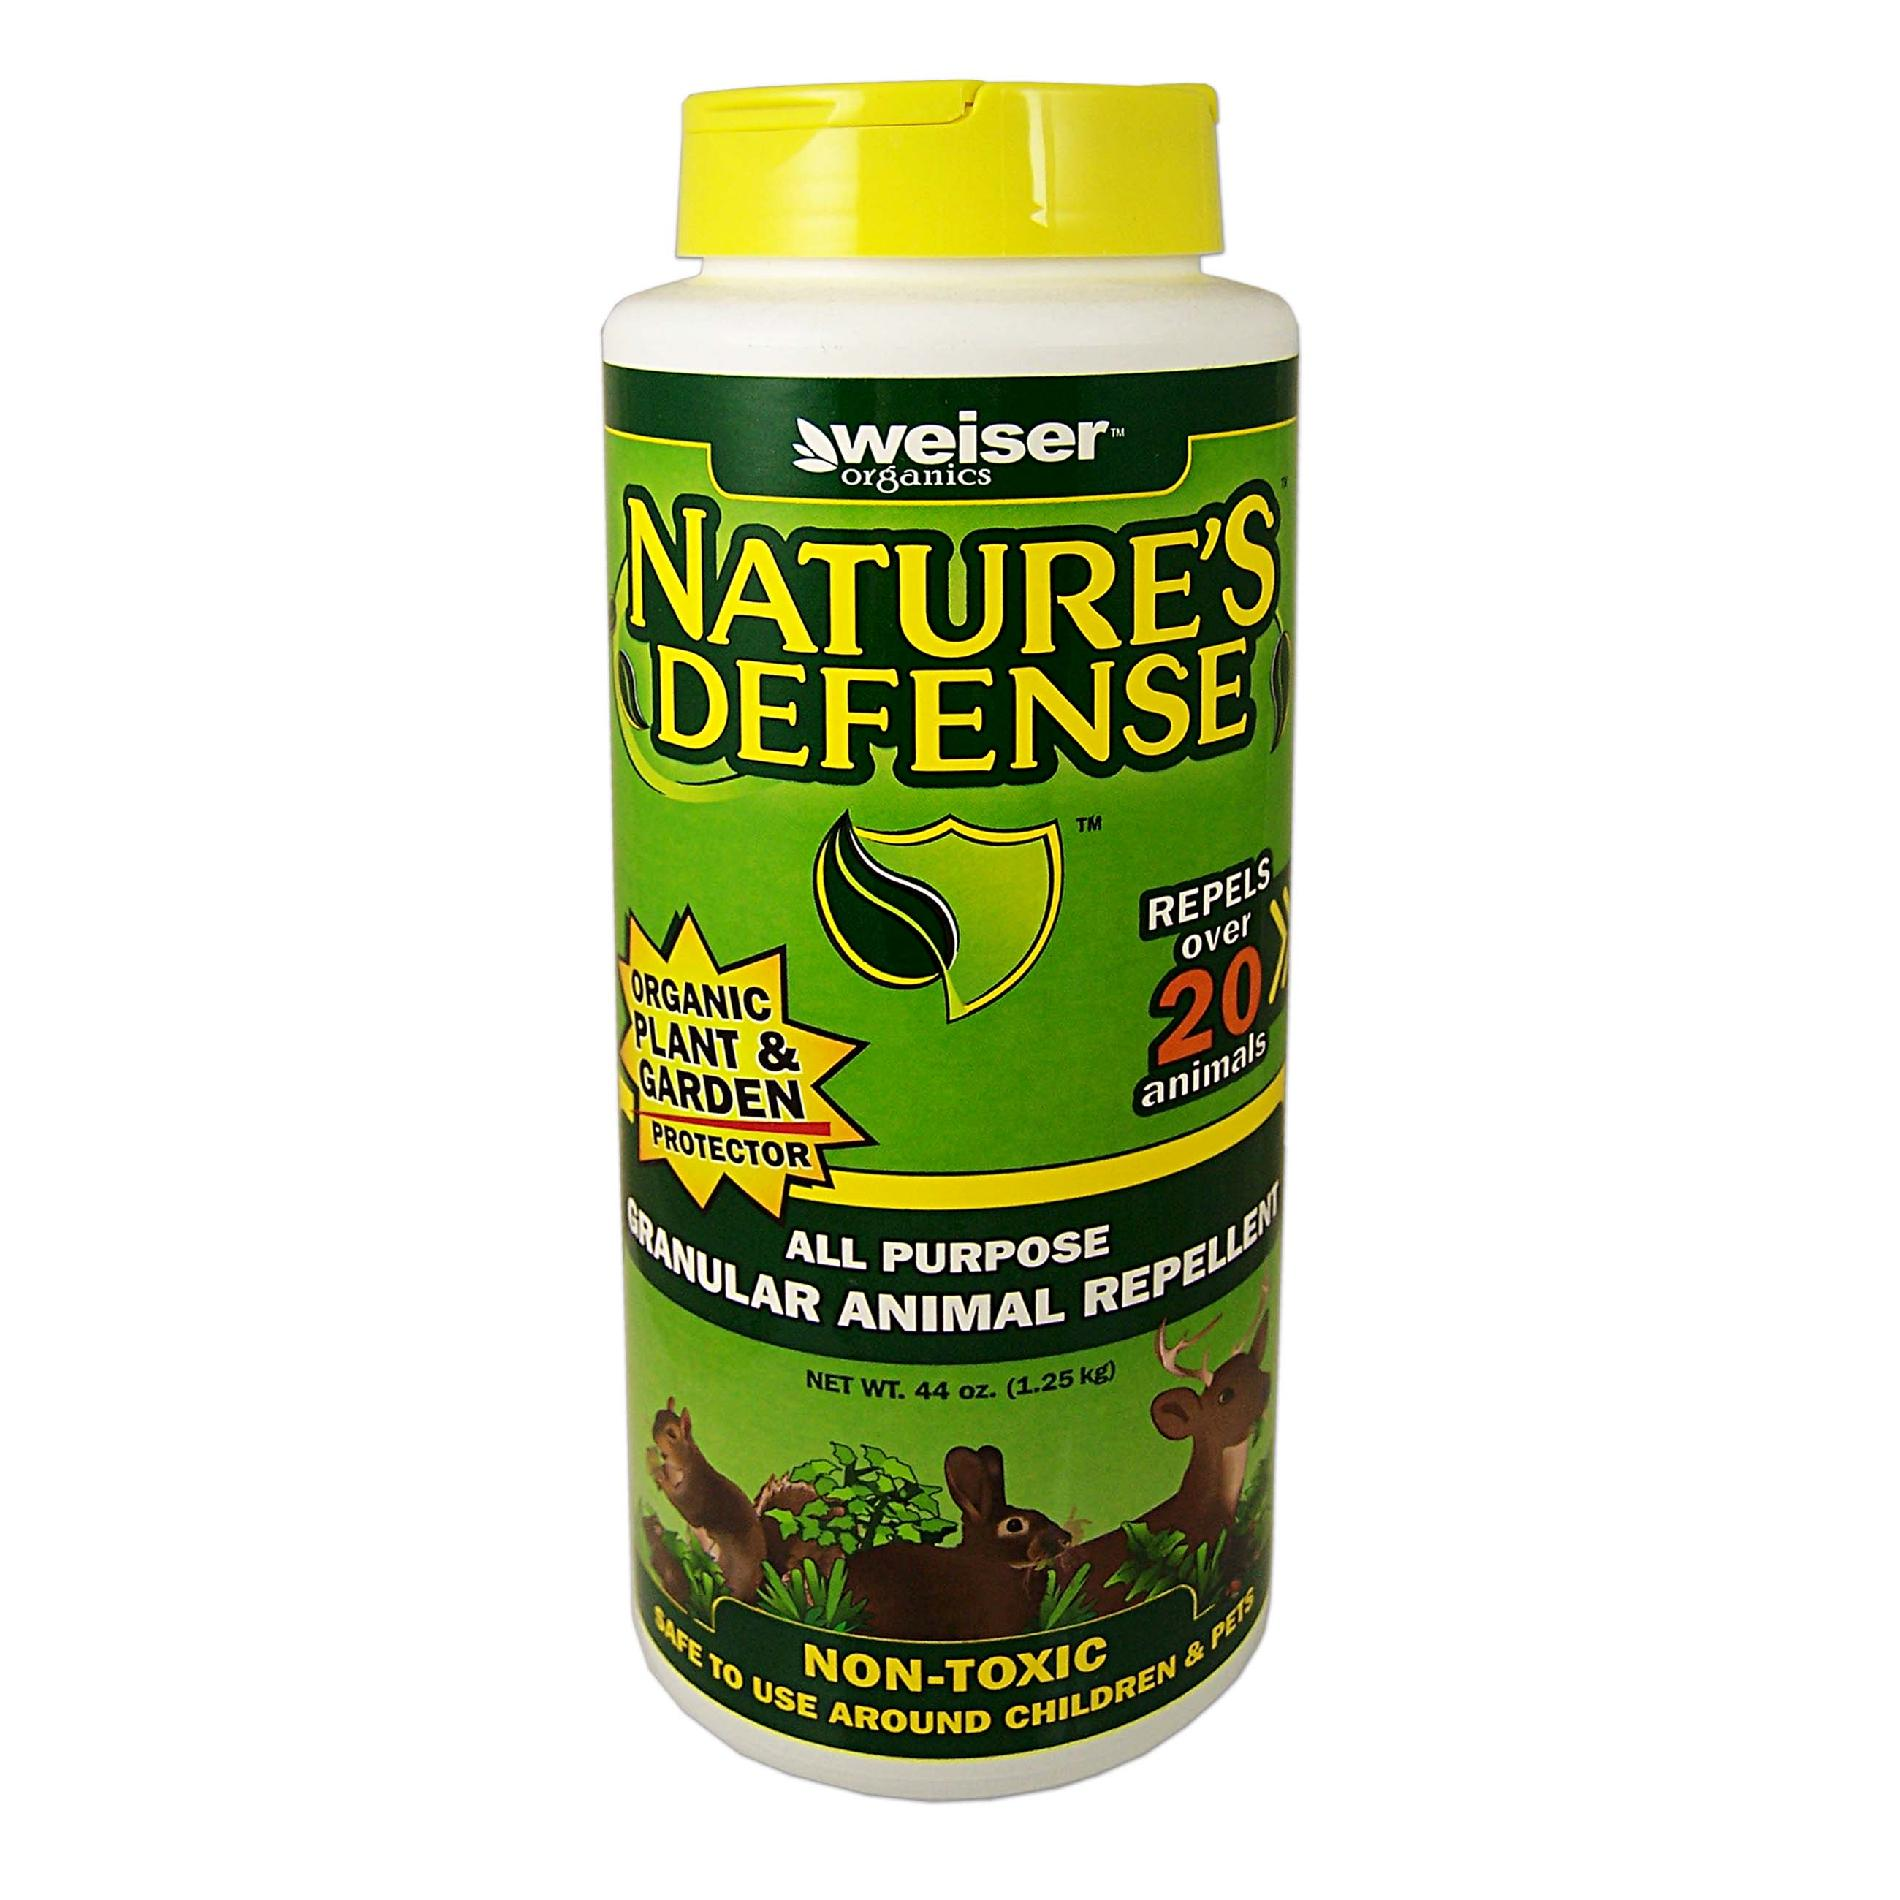 Bird-X Inc. Bird-X Nature's Defense ORGANIC All-Purpose Animal Repellent Granules-44 oz. PartNumber: 01297257000P KsnValue: 01297257000 MfgPartNumber: ND-10006C